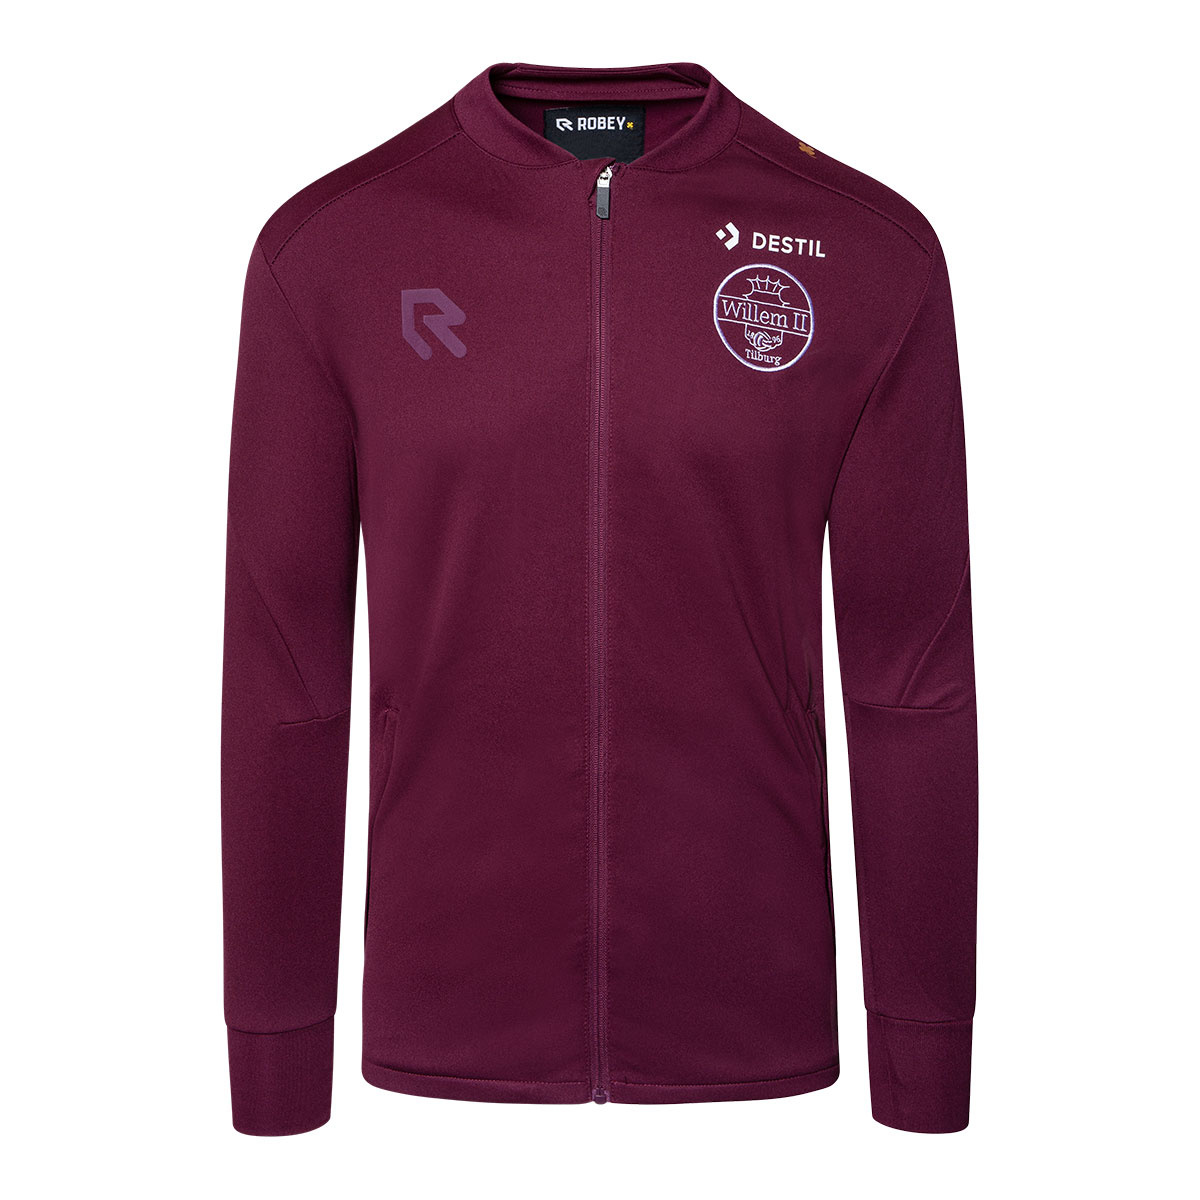 Robey Willem II trainingjacket senior 2019-2020